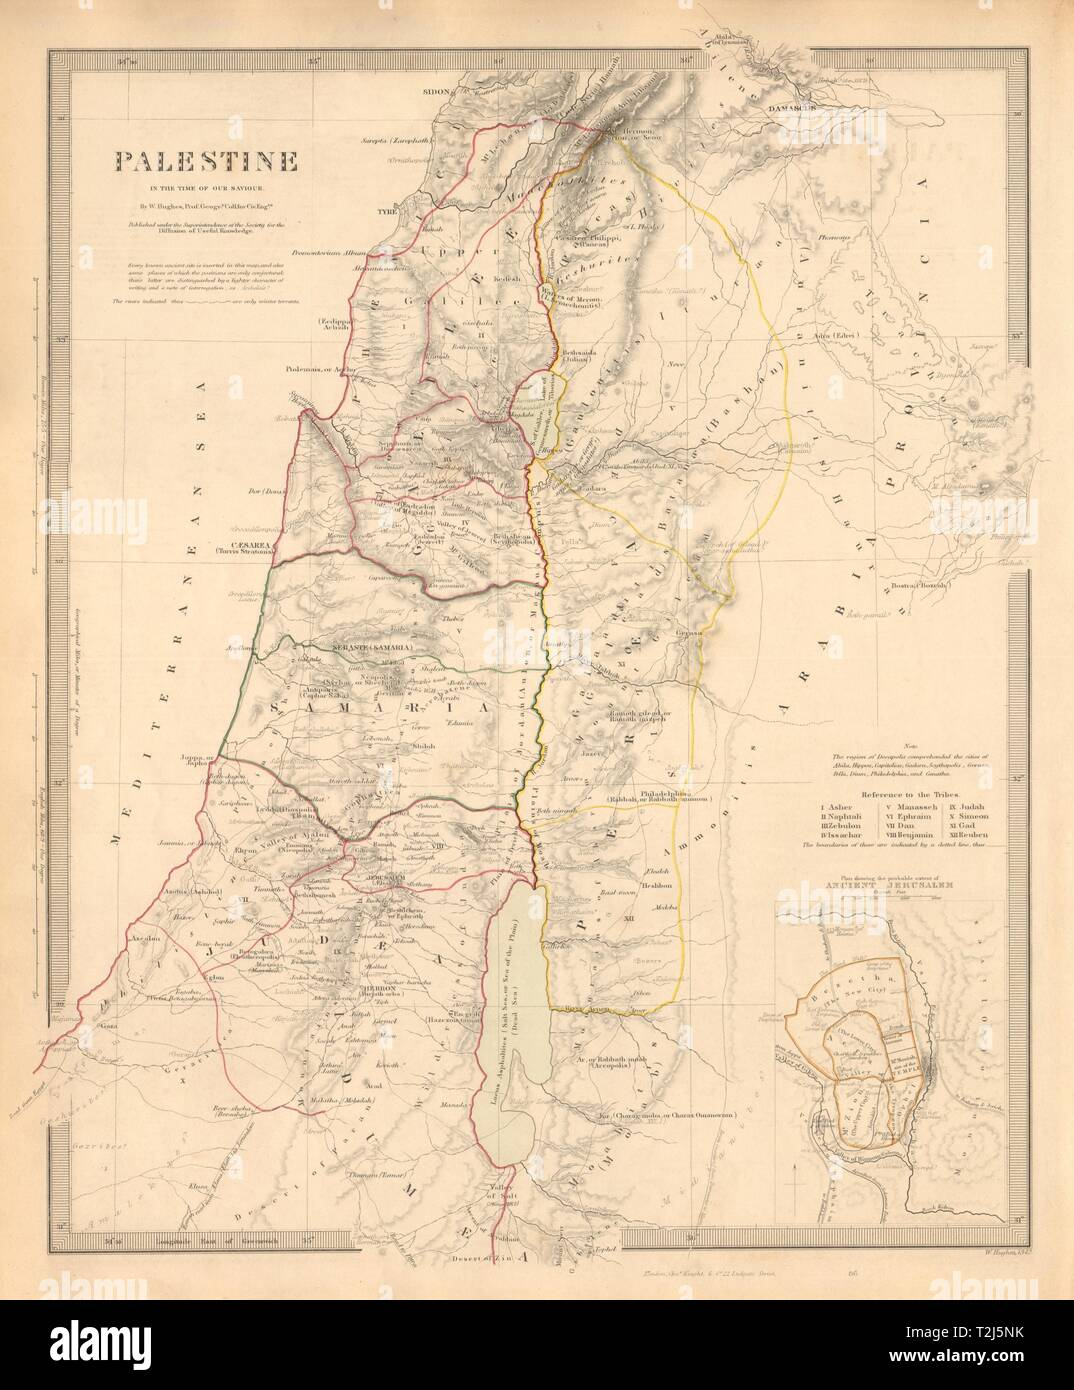 PALESTINE in the time of Our Saviour. Ancient Jerusalem. Israel ...